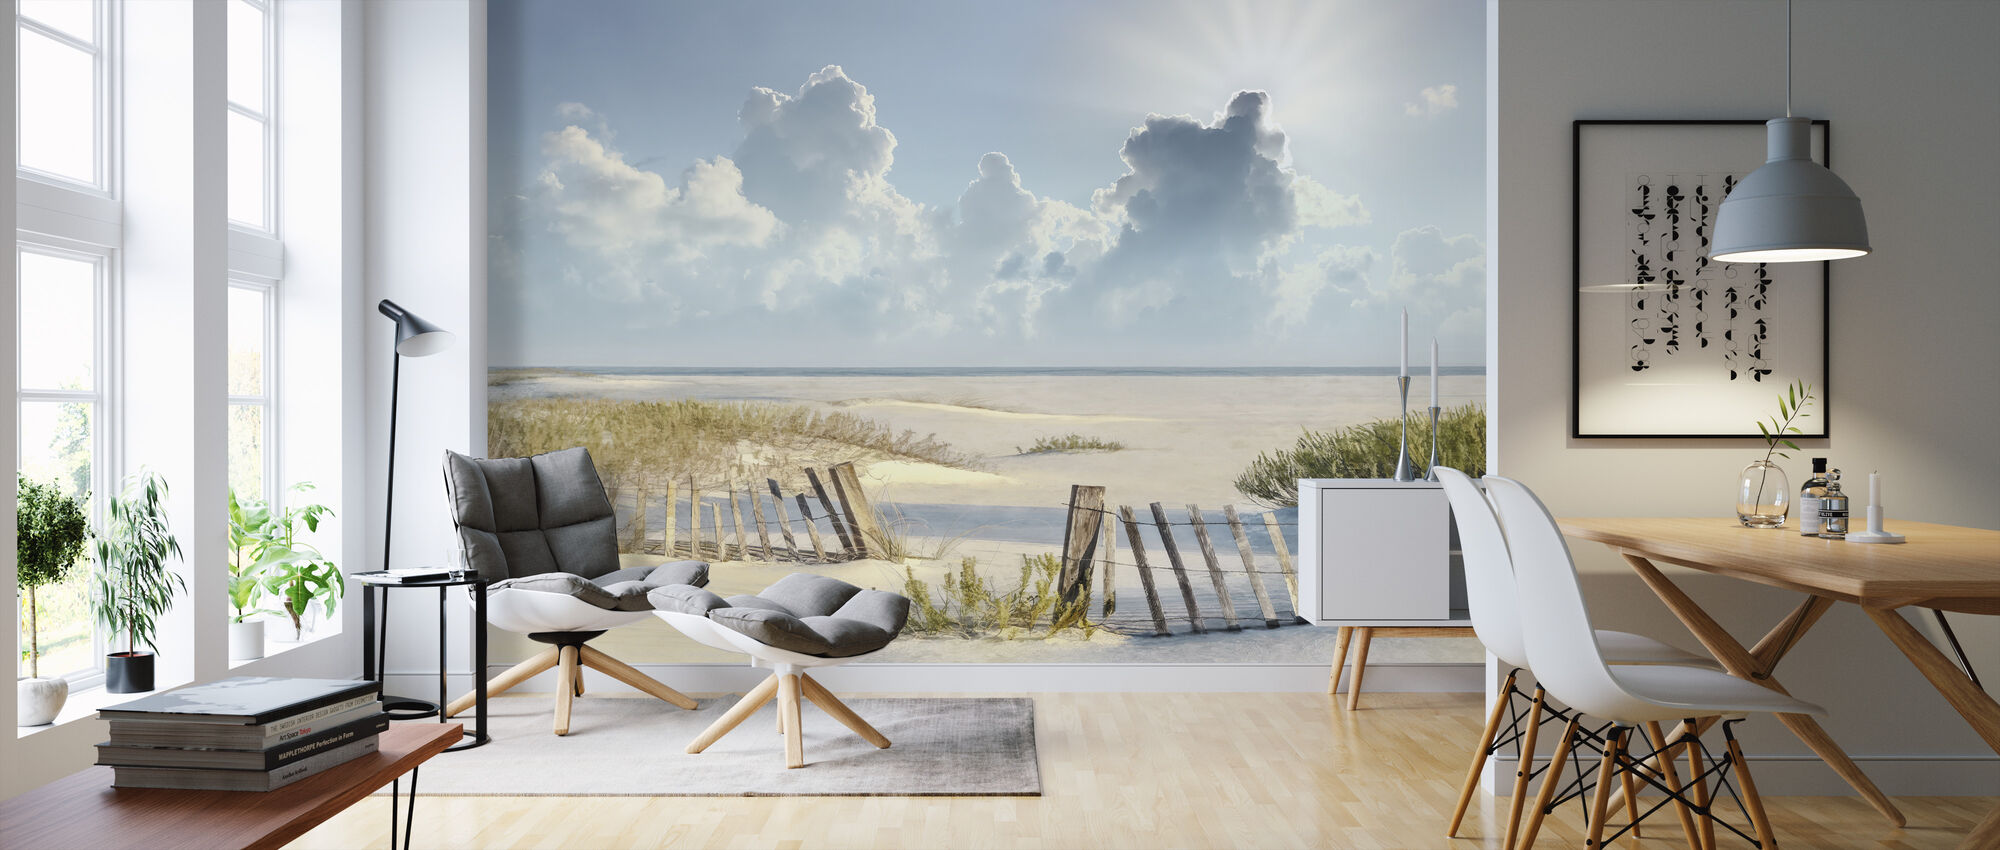 Clouds over Beach - Wallpaper - Living Room